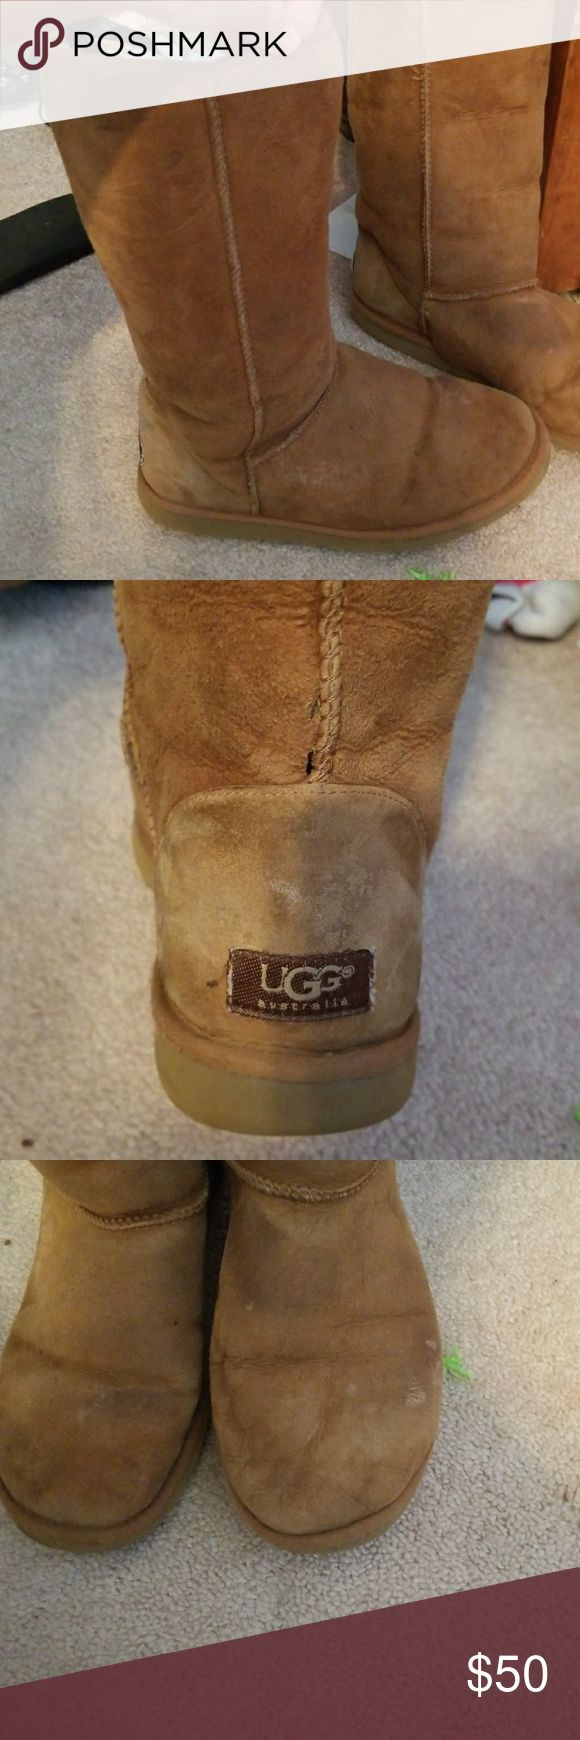 Tall UGG Boots Worn, tall UGG boots.  Women size 9 but fits a 10. Willing to accept any offer! UGG Shoes Winter & Rain Boots